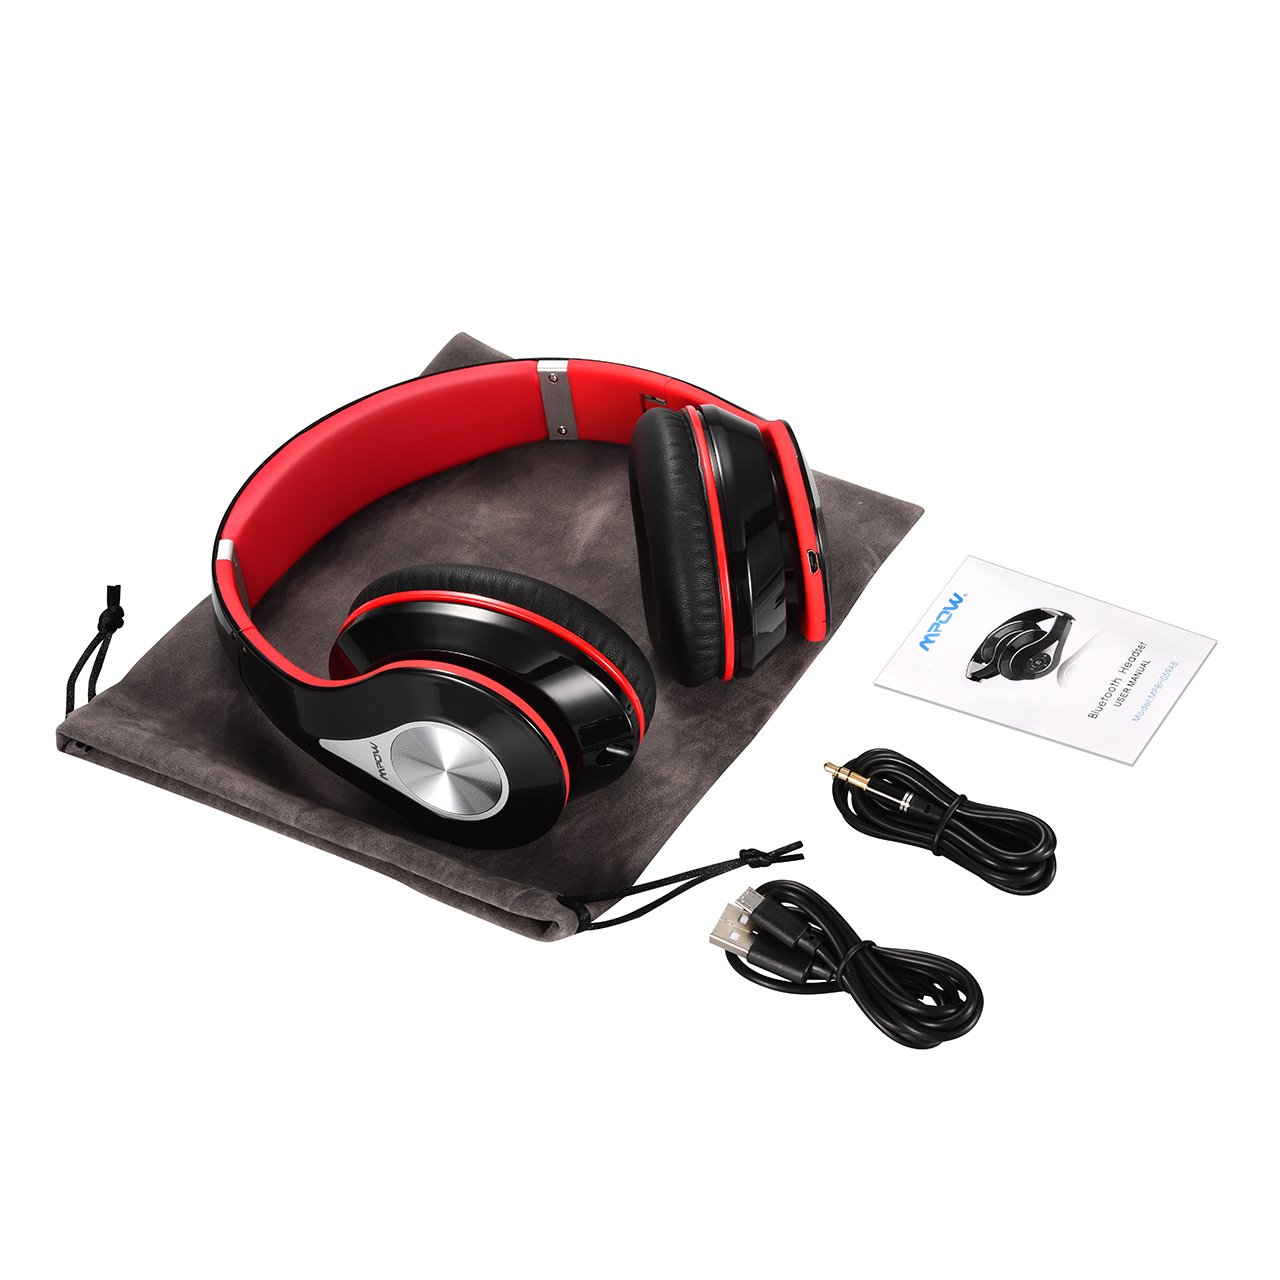 Mpow Bluetooth Headphones Over Ear, Hi-Fi Stereo Wireless Headset, Foldable, Soft Memory-Protein Earmuffs, w/ Built-in Mic and Wired Mode for PC/ Cell Phones/ TV